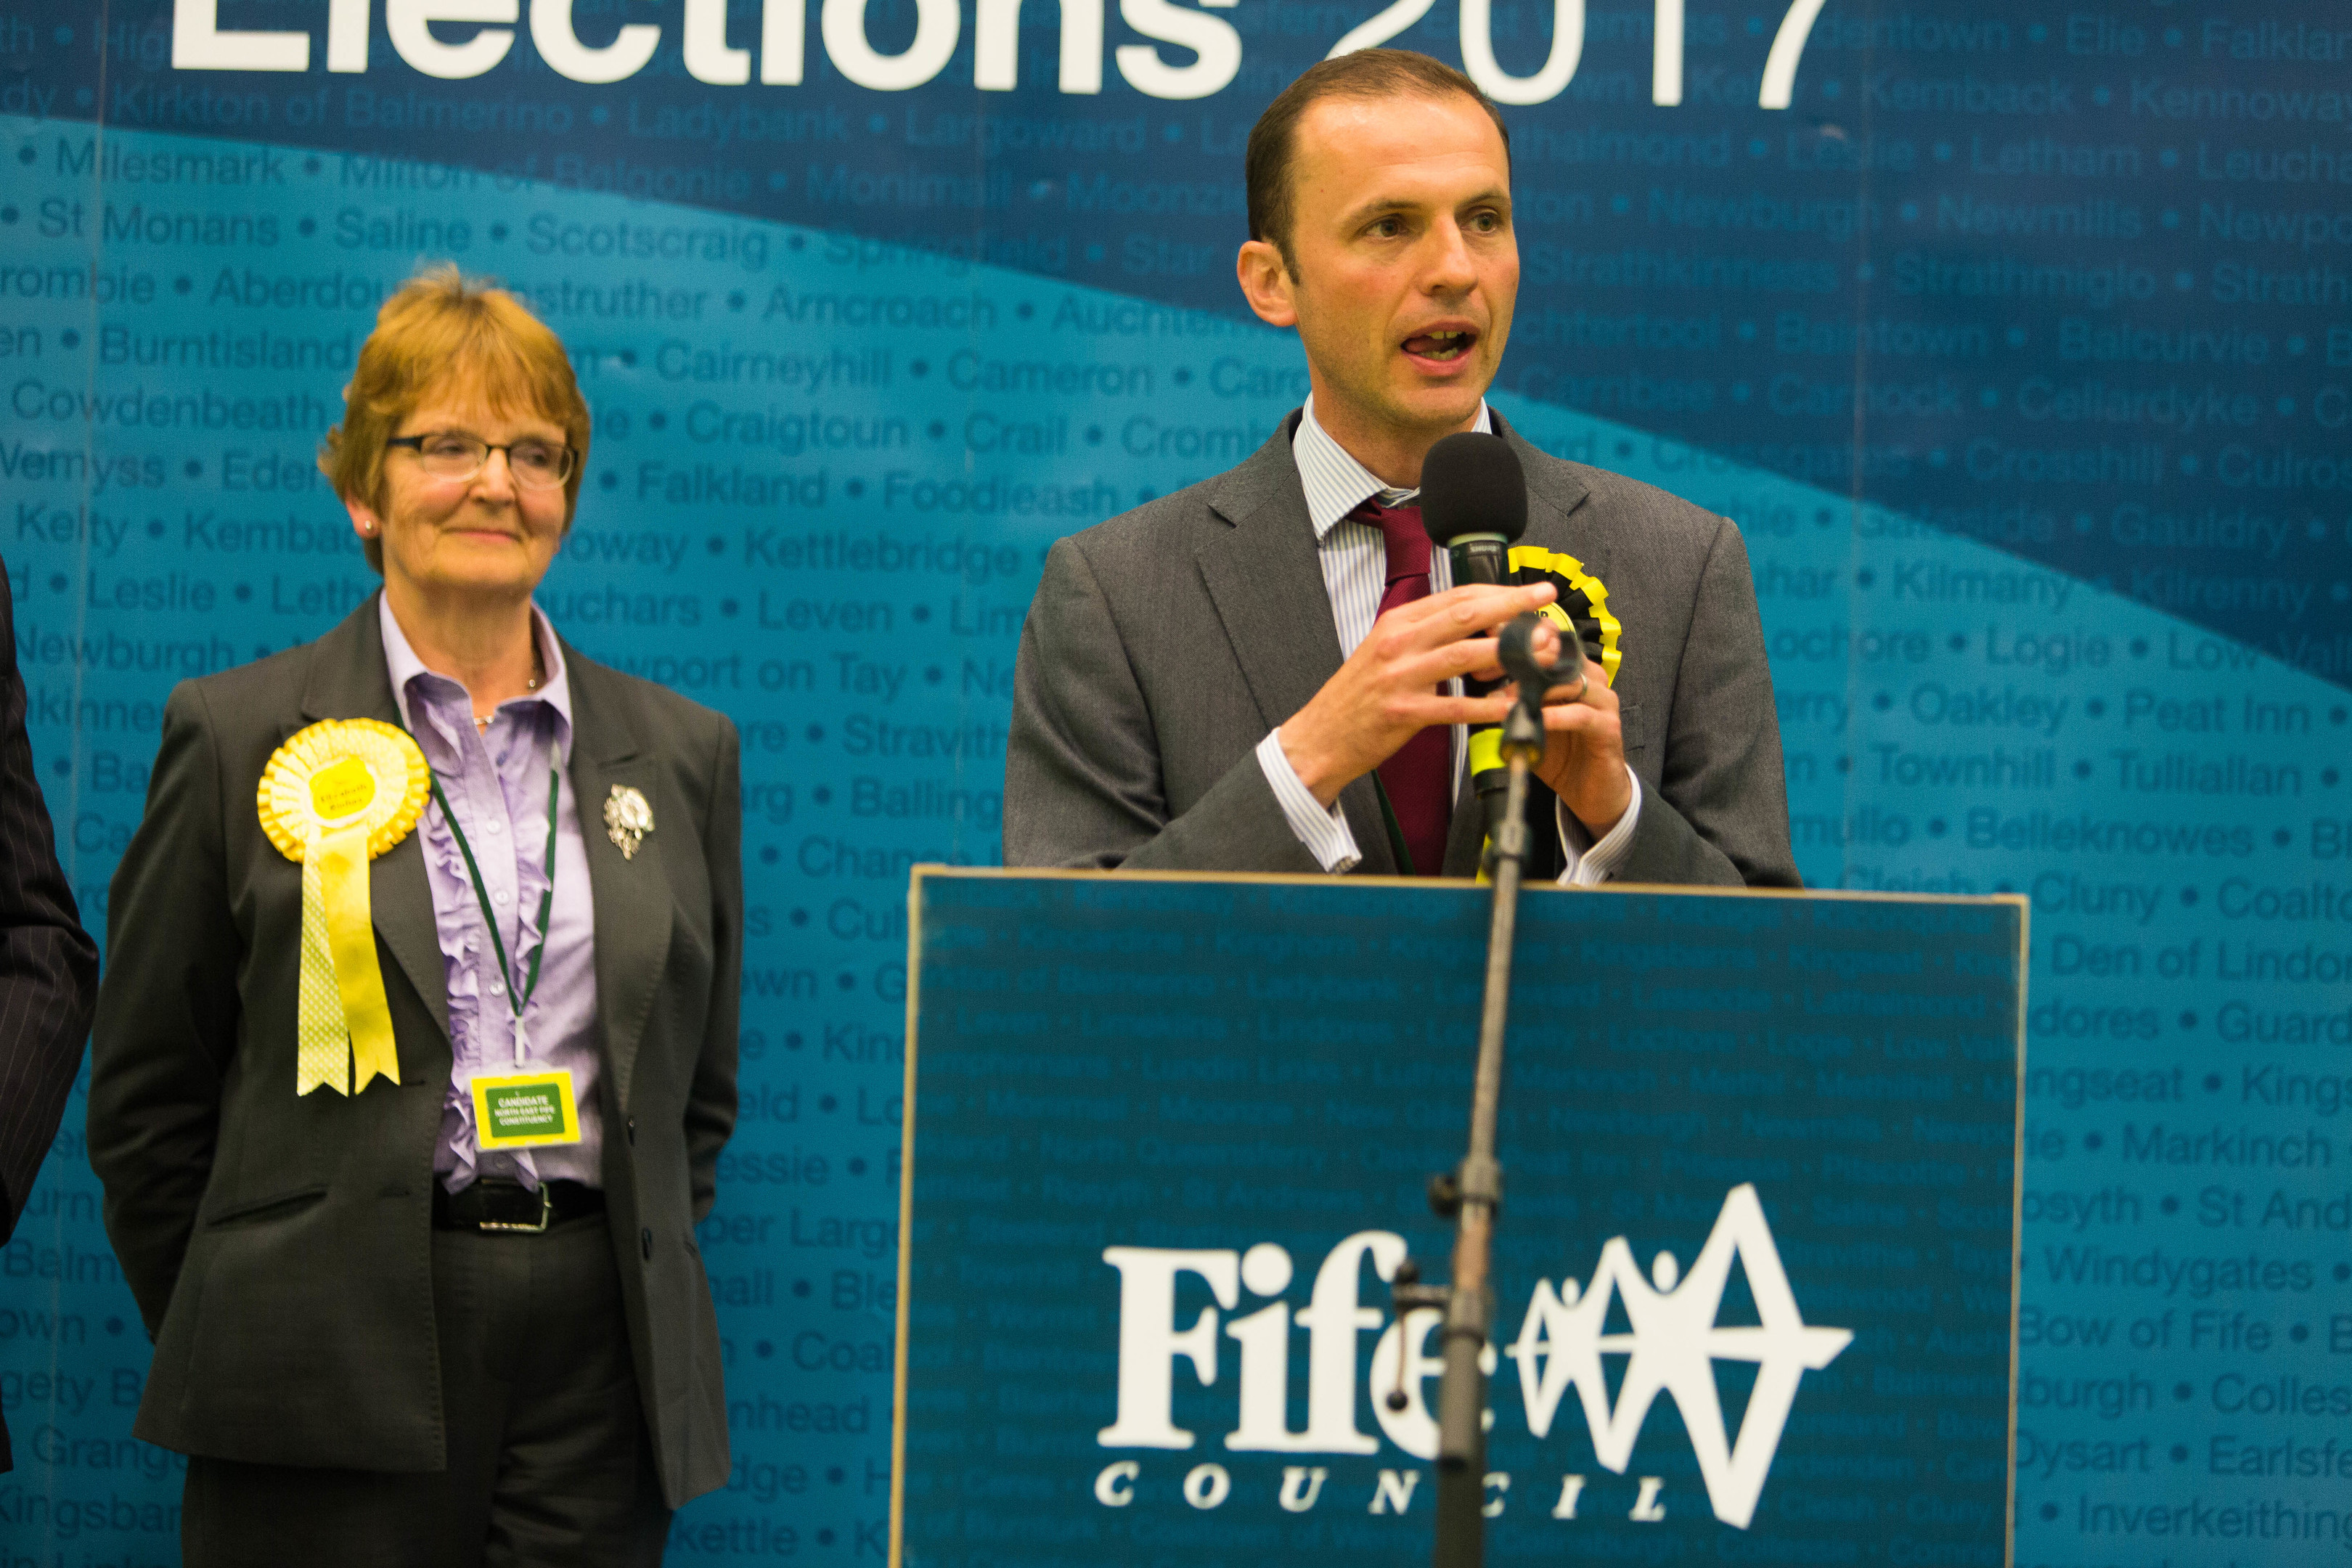 The SNP's Stephen Gethins retained his seat in North East Fife by just two votes, ahead of Liberal Democrat Elizabeth Riches.